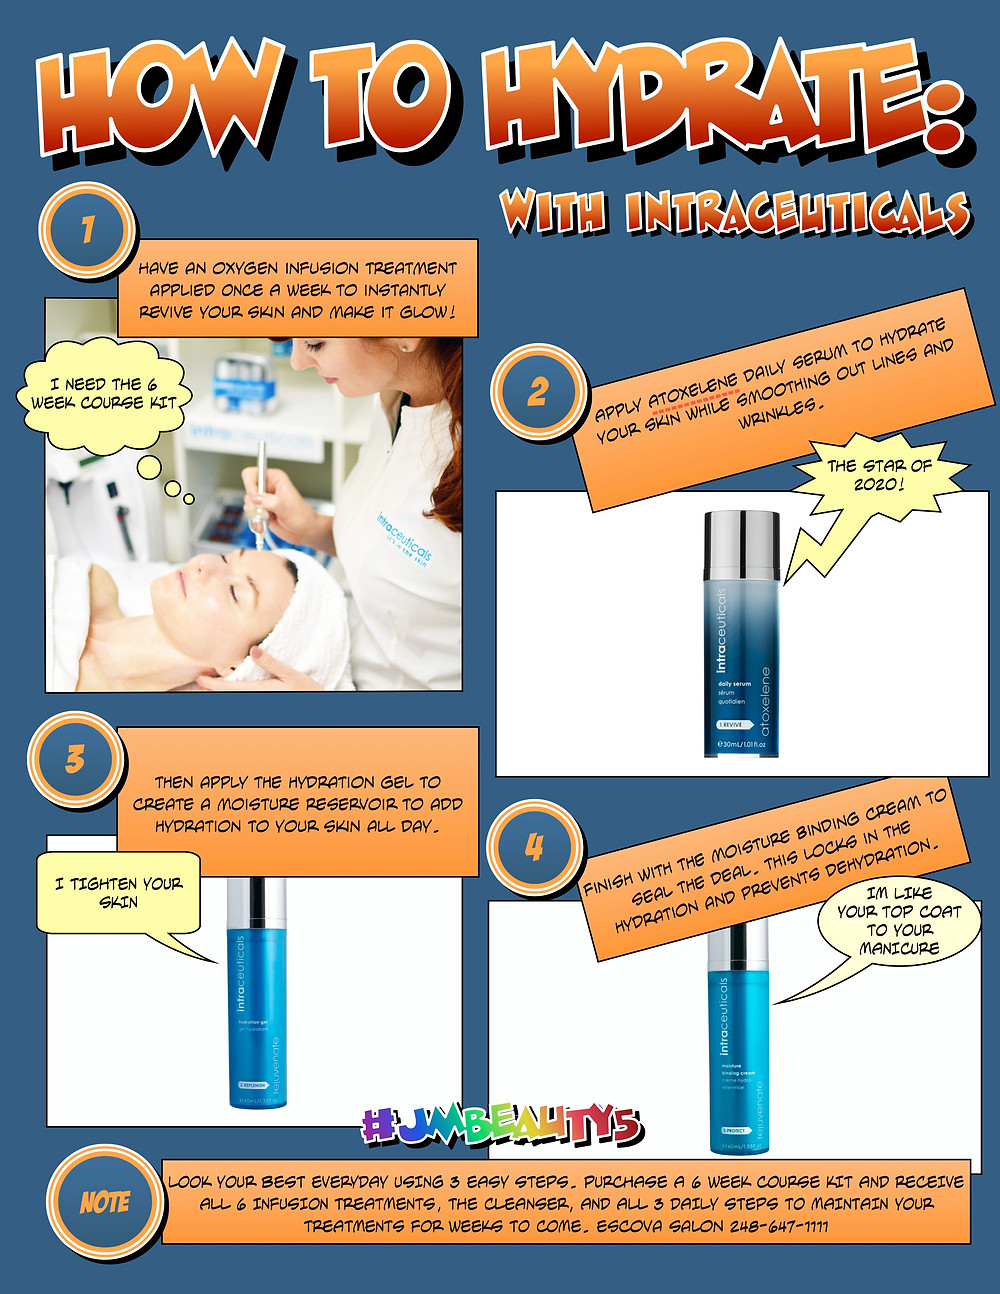 How to hydrate with Intraceuticals